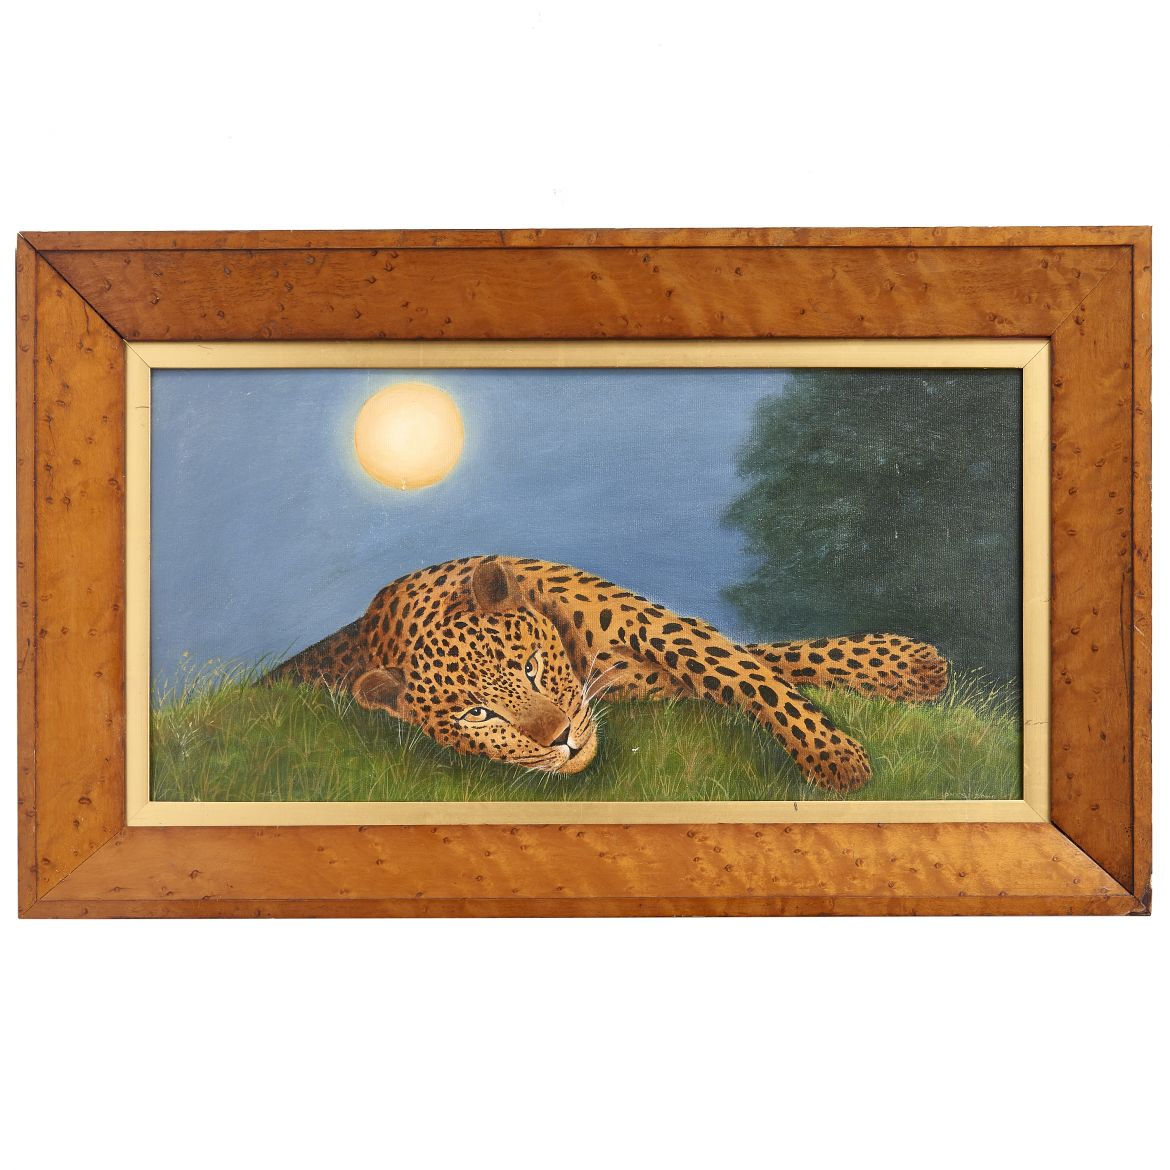 Oil Painting of Leopard